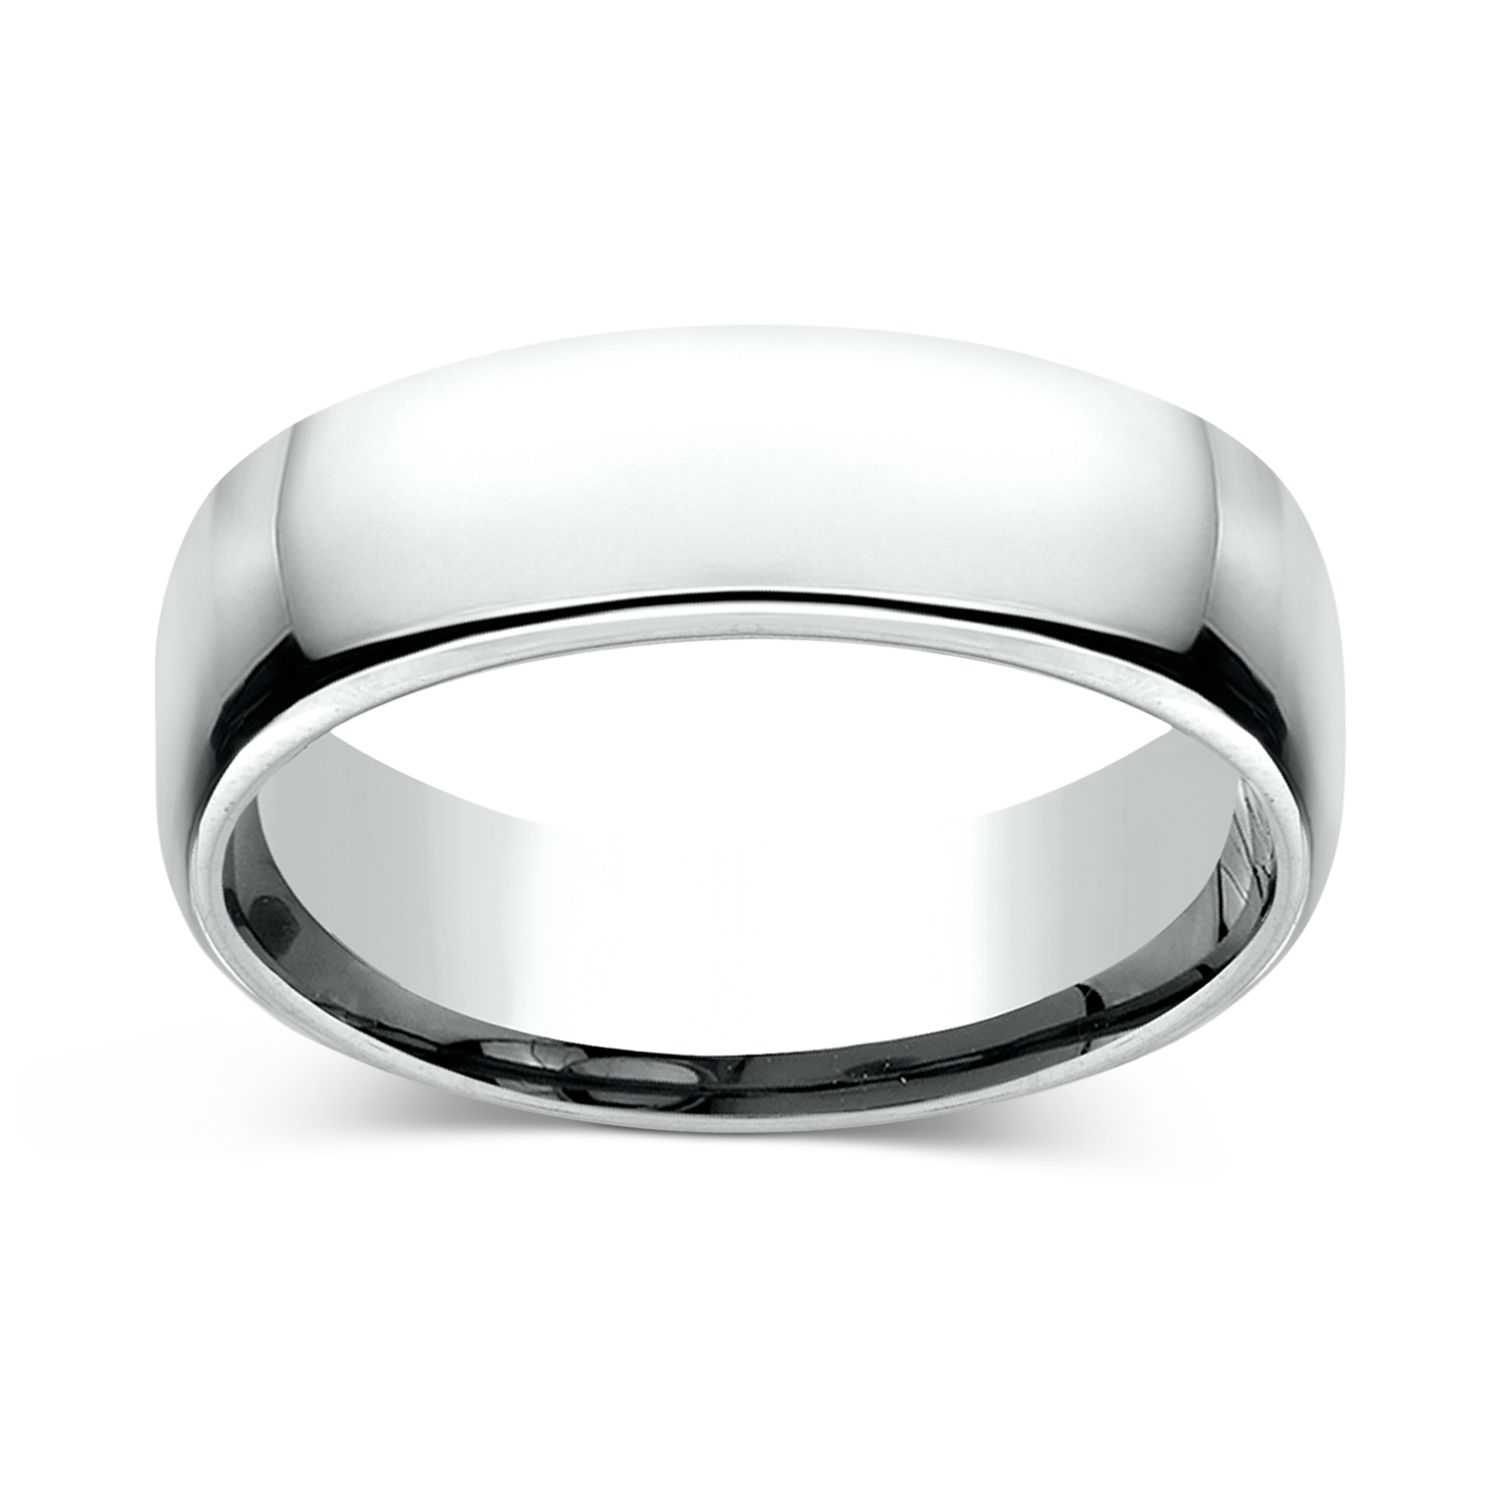 CHARLES & COLVARD: European Comfort Fit 6.5mm Wedding Band